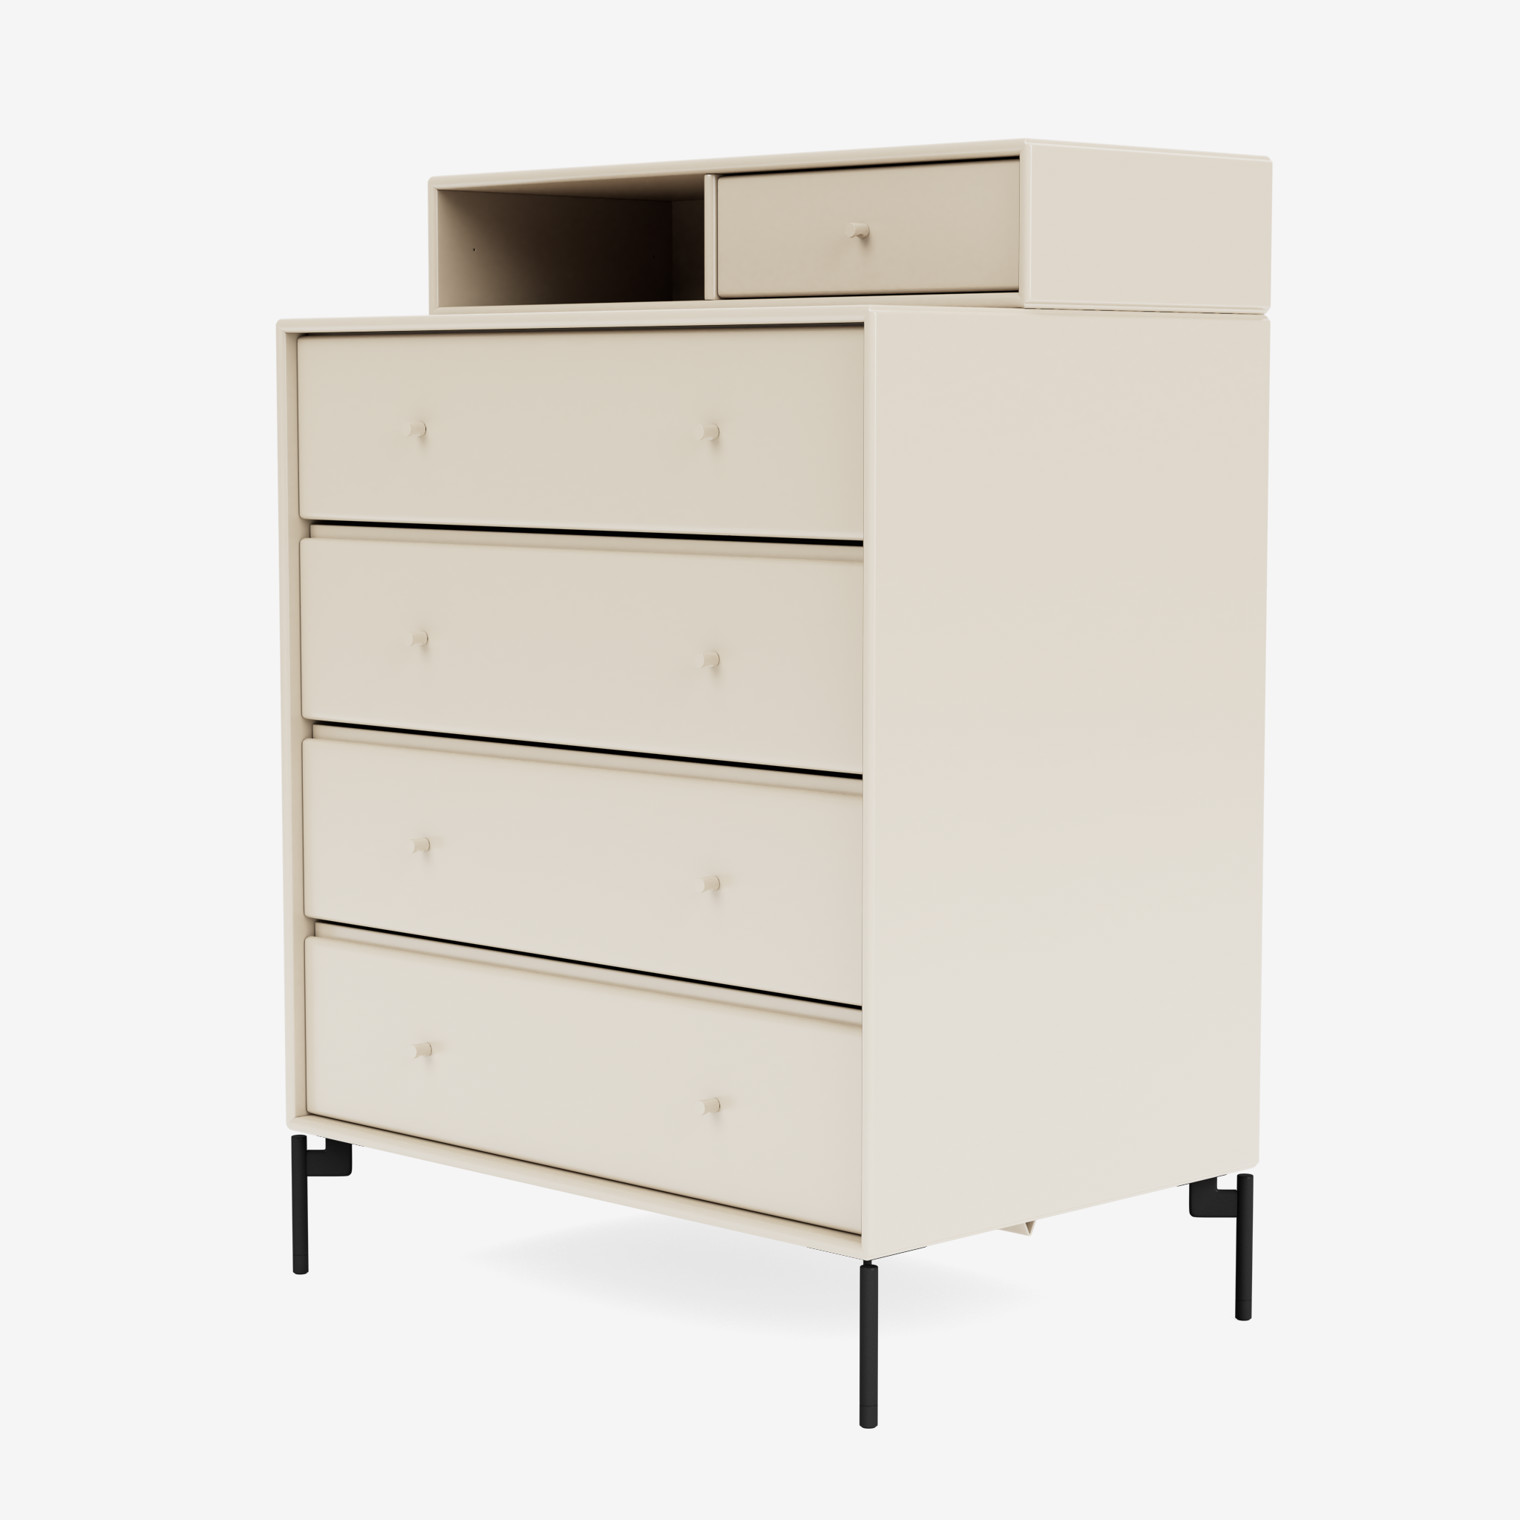 KEEP chest of drawers